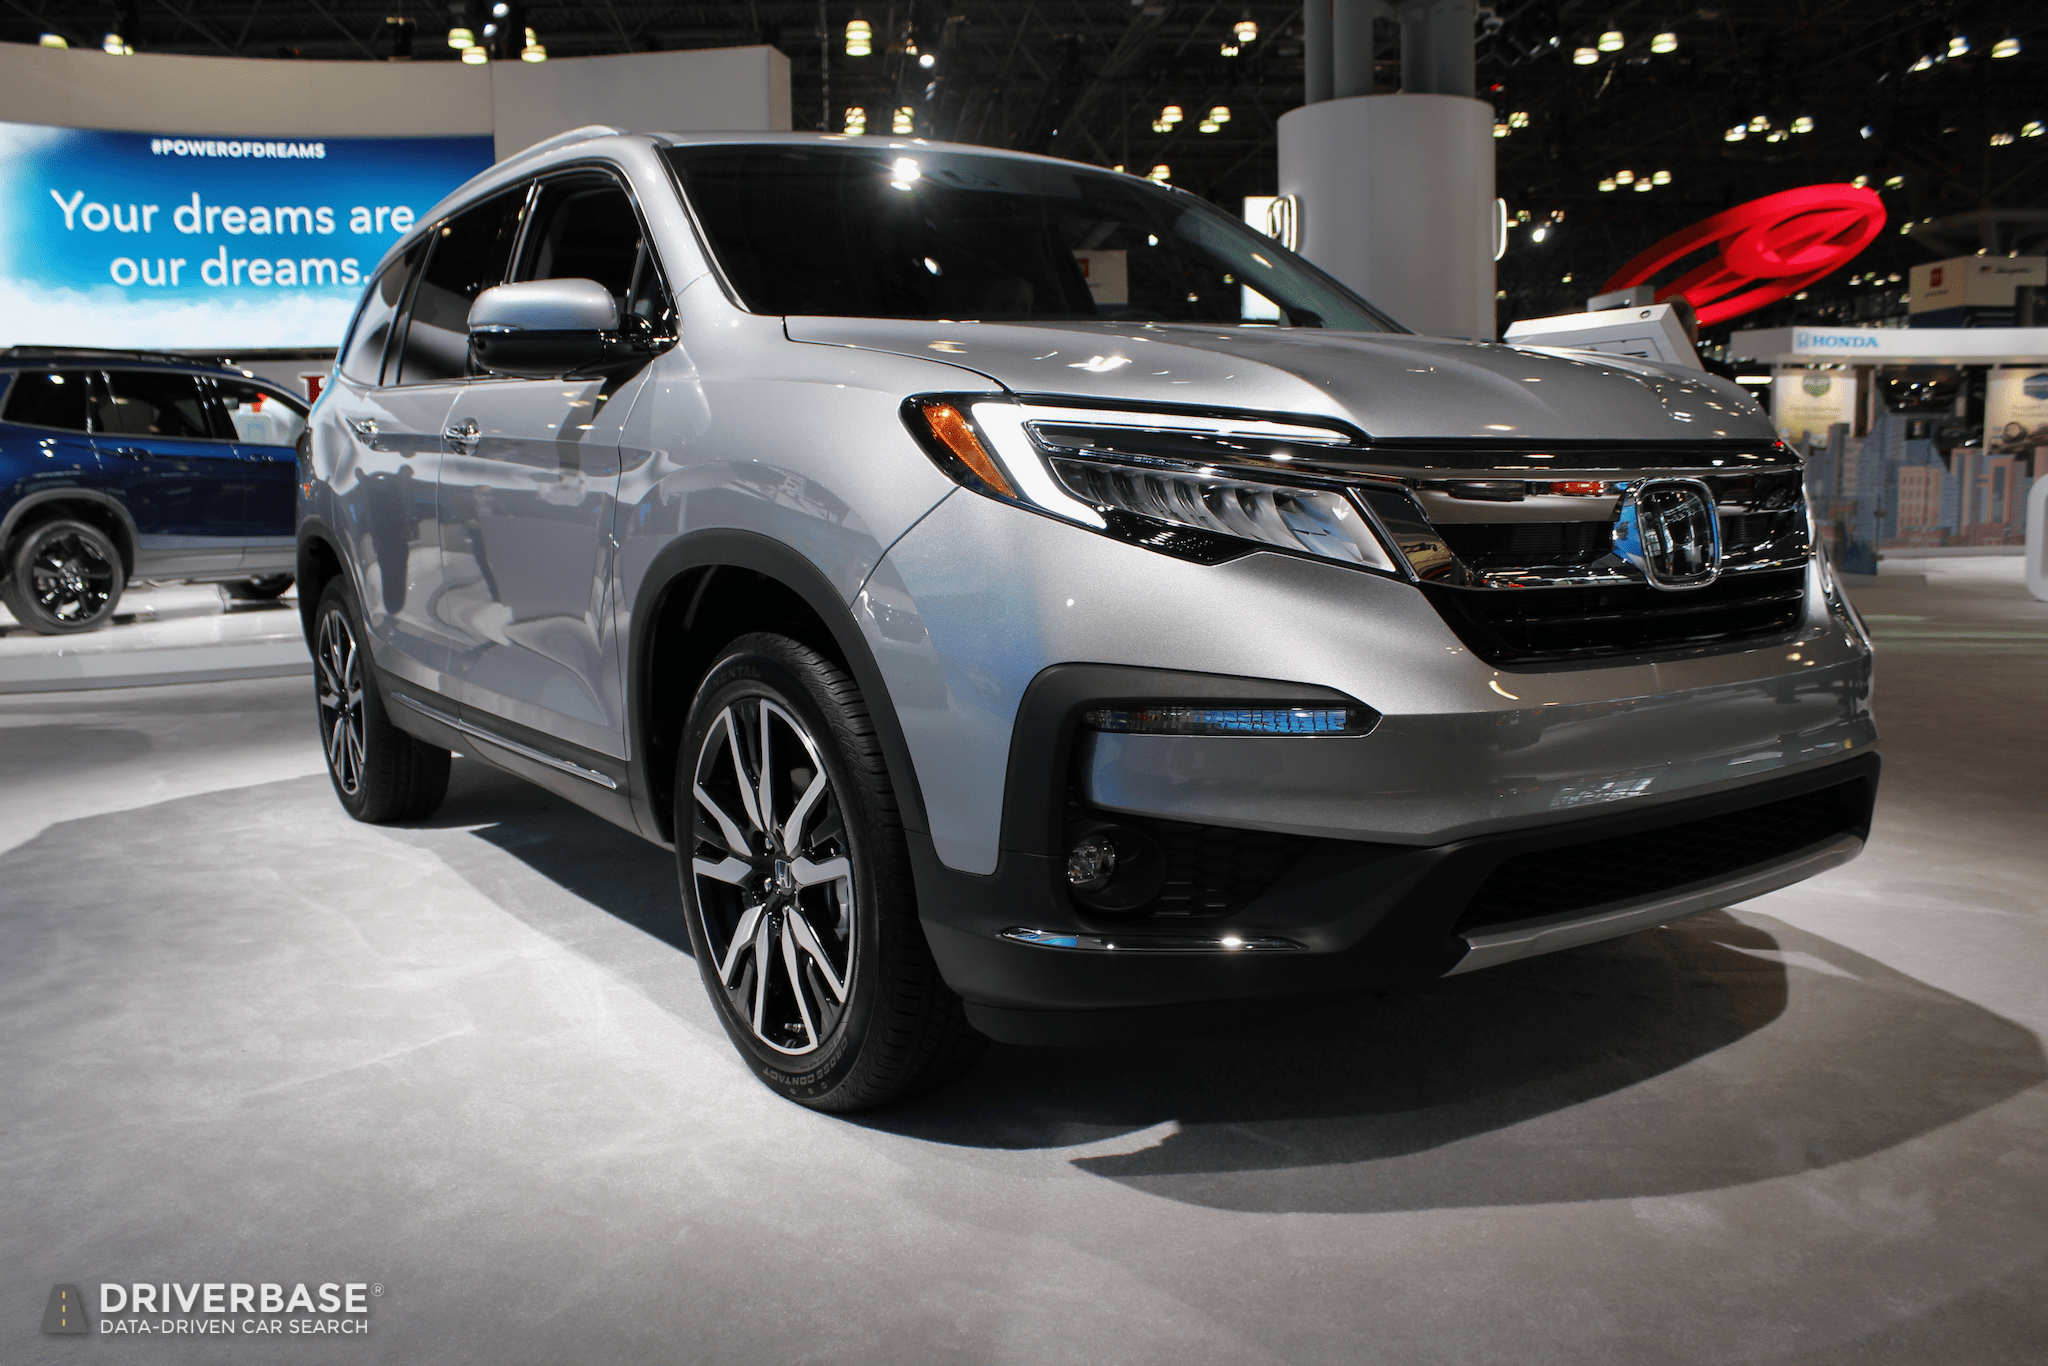 2020 Honda Pilot Suv At The 2019 New York Auto Show Driverbase